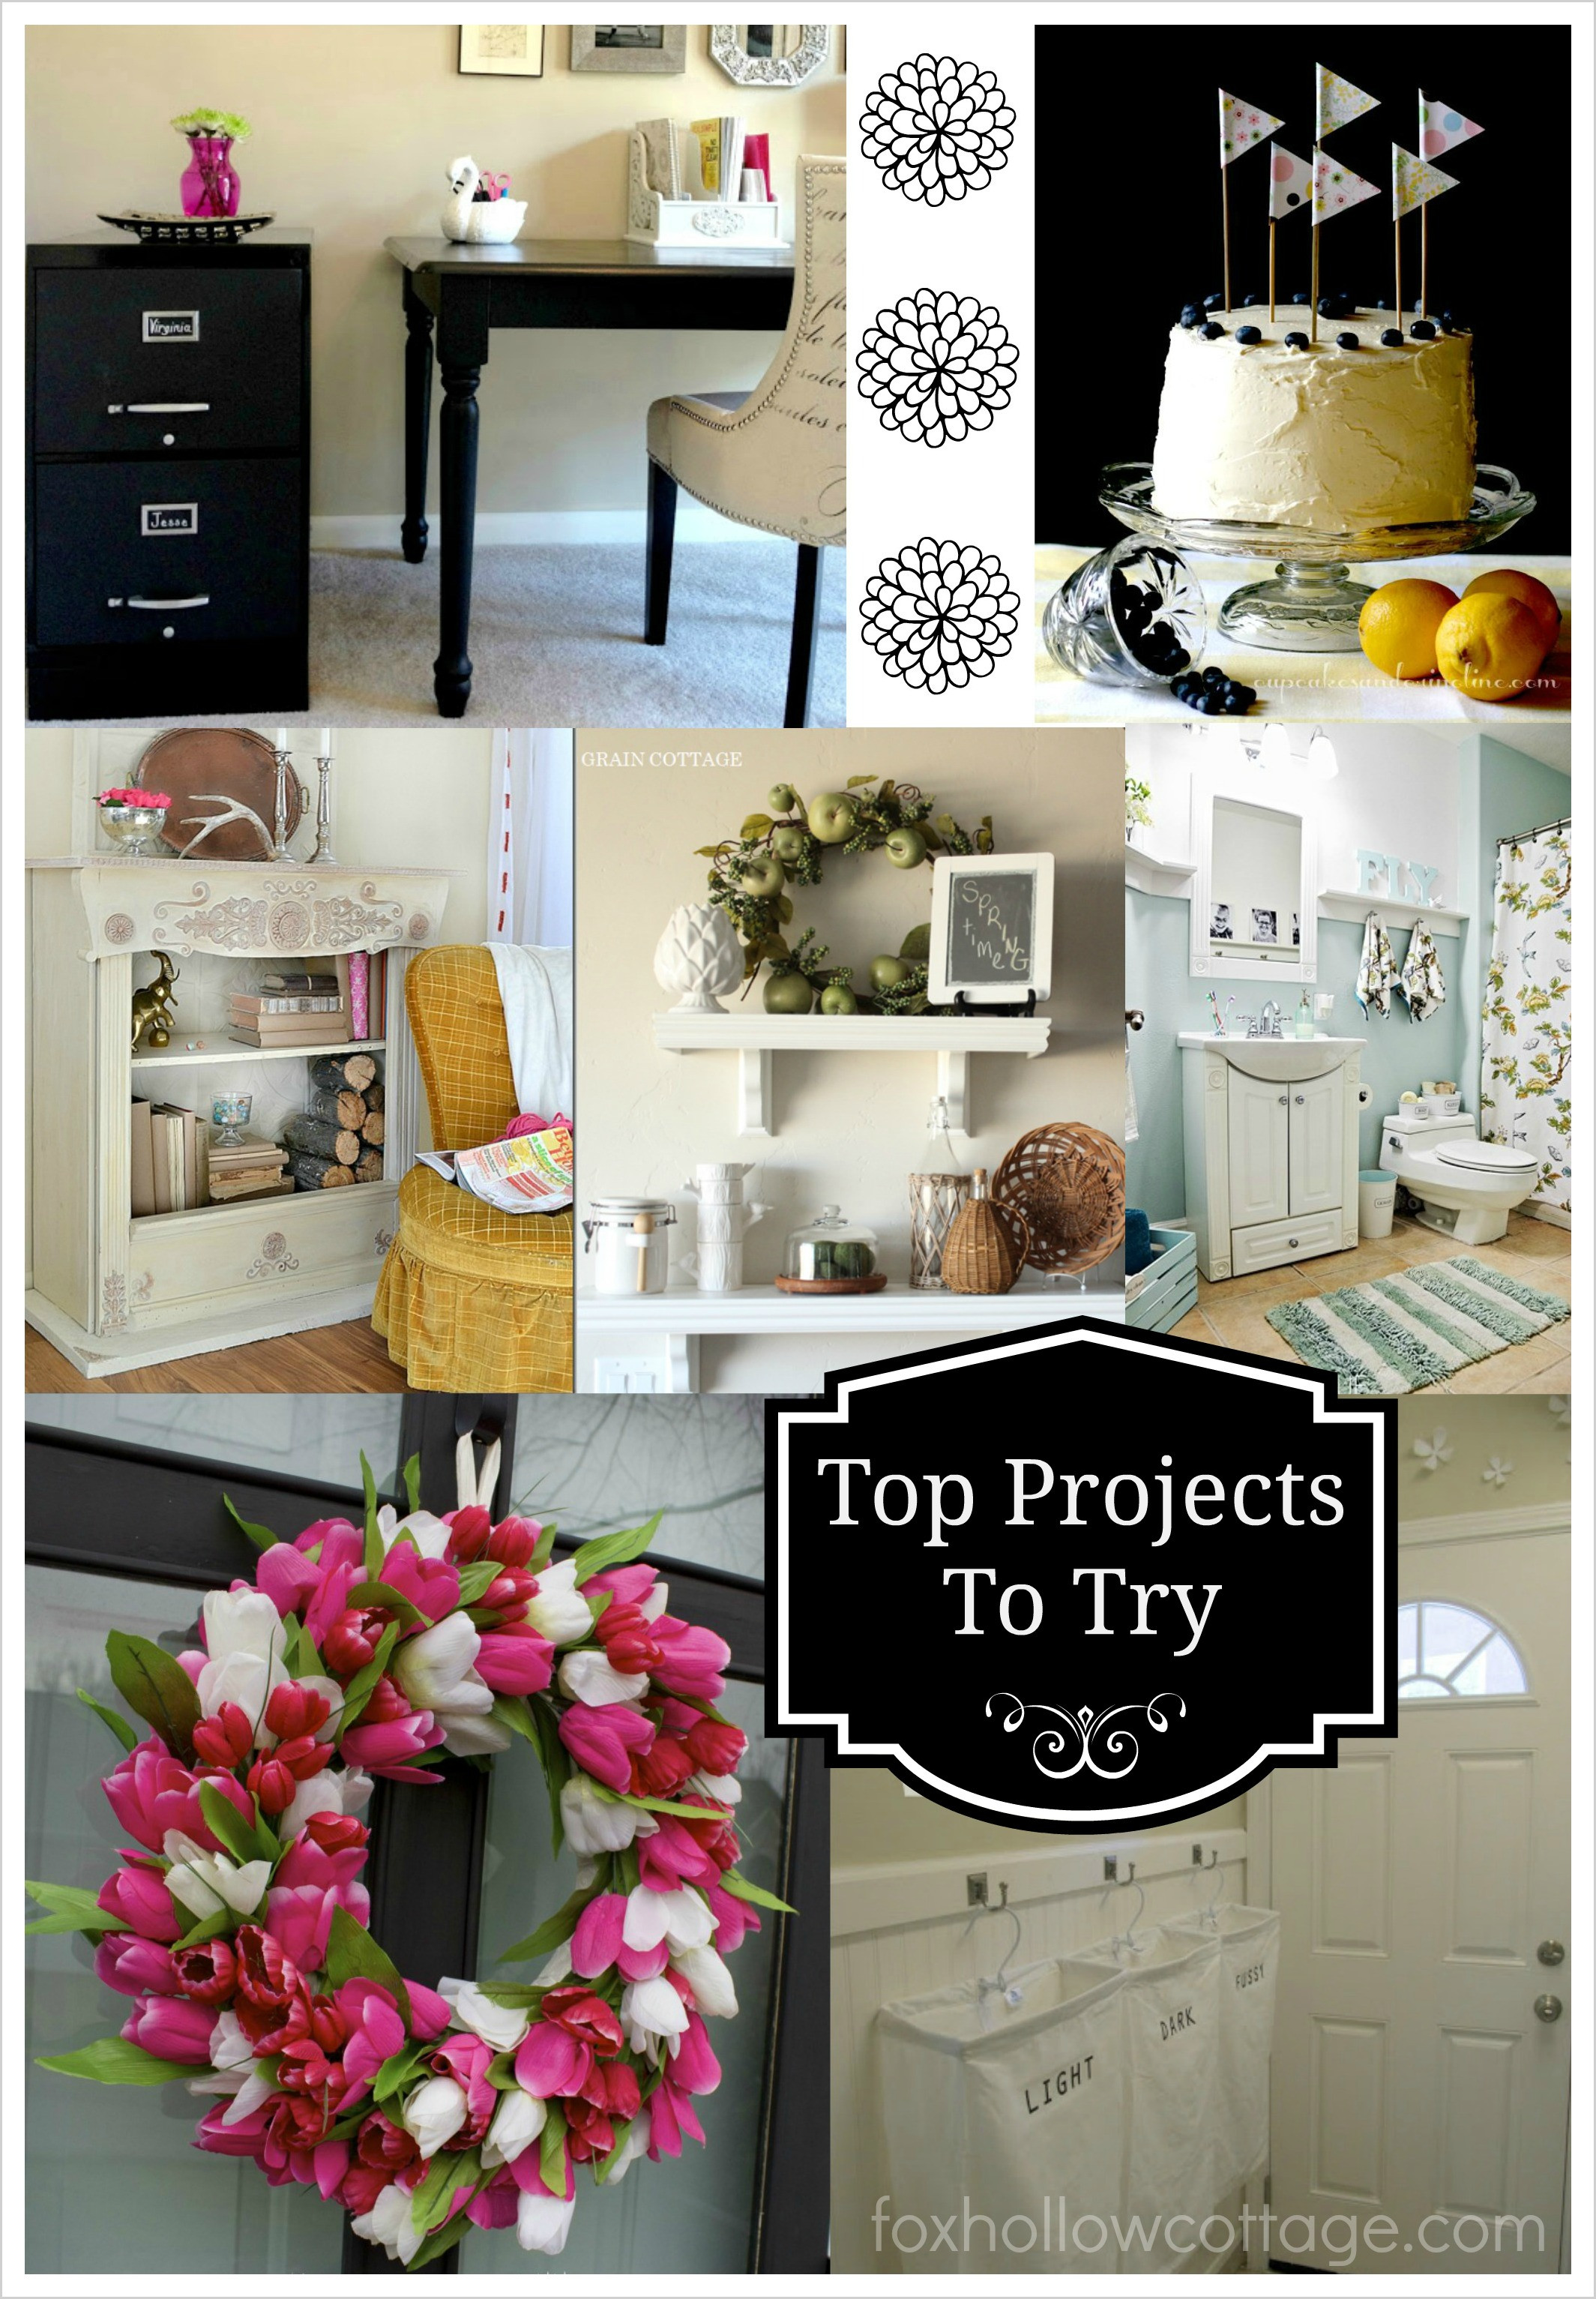 DIY Home Decorating Pinterest  Power Pinterest Link Party and Friday Fav Features